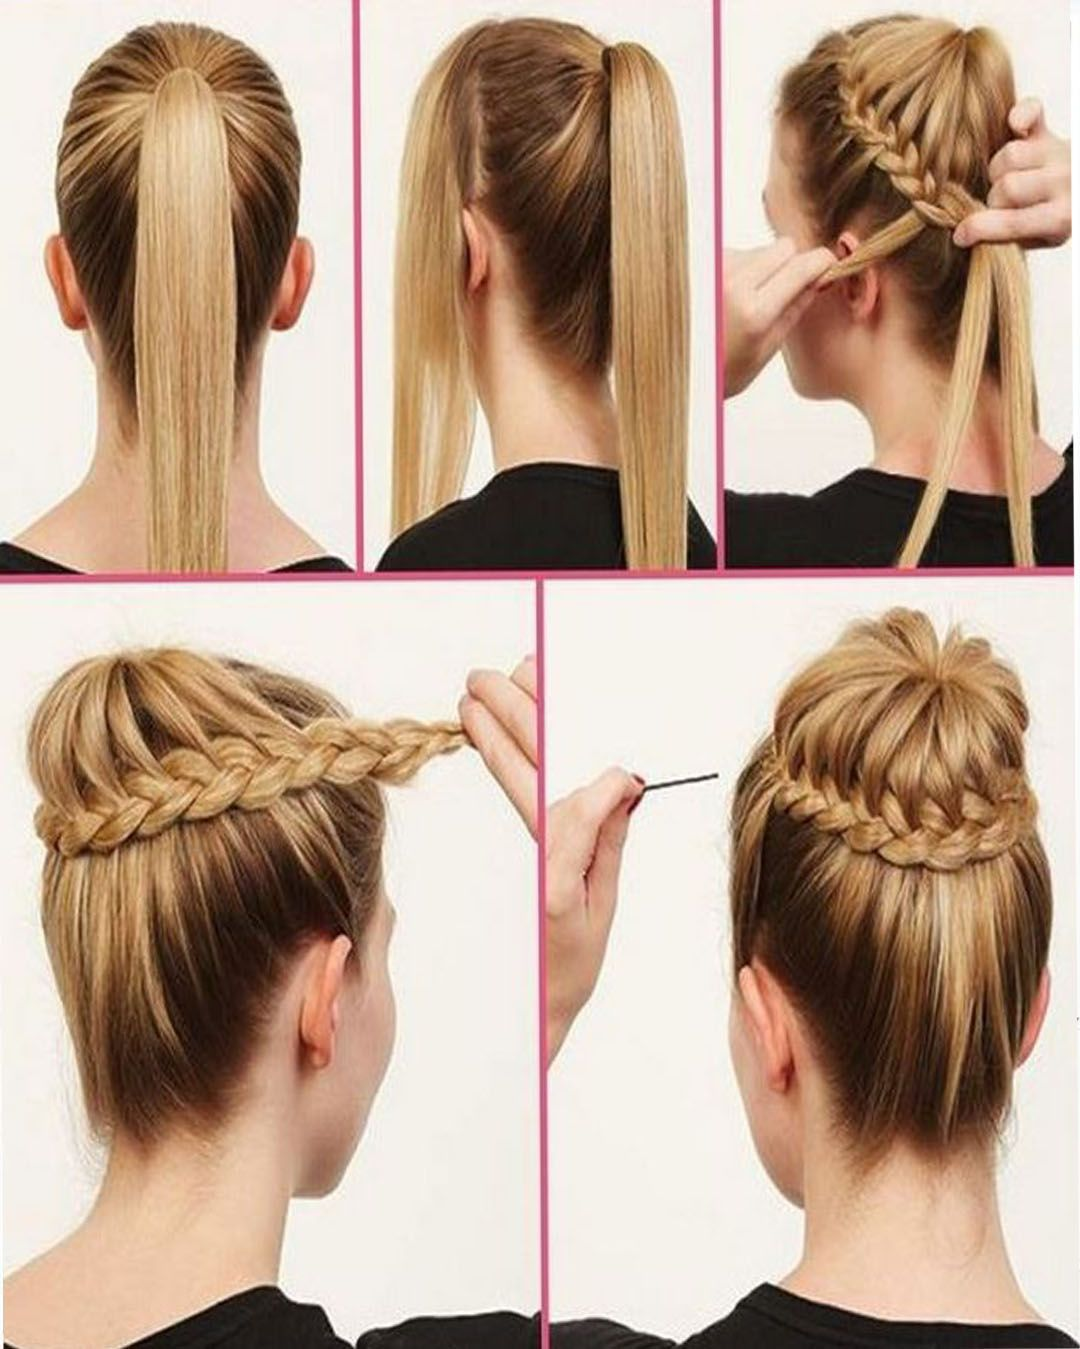 The Classic Top Bun Bun Hairstyles With Pictures Within 5 Steps Everafterguide Hair Styles Hair Bun Tutorial Hair Hacks